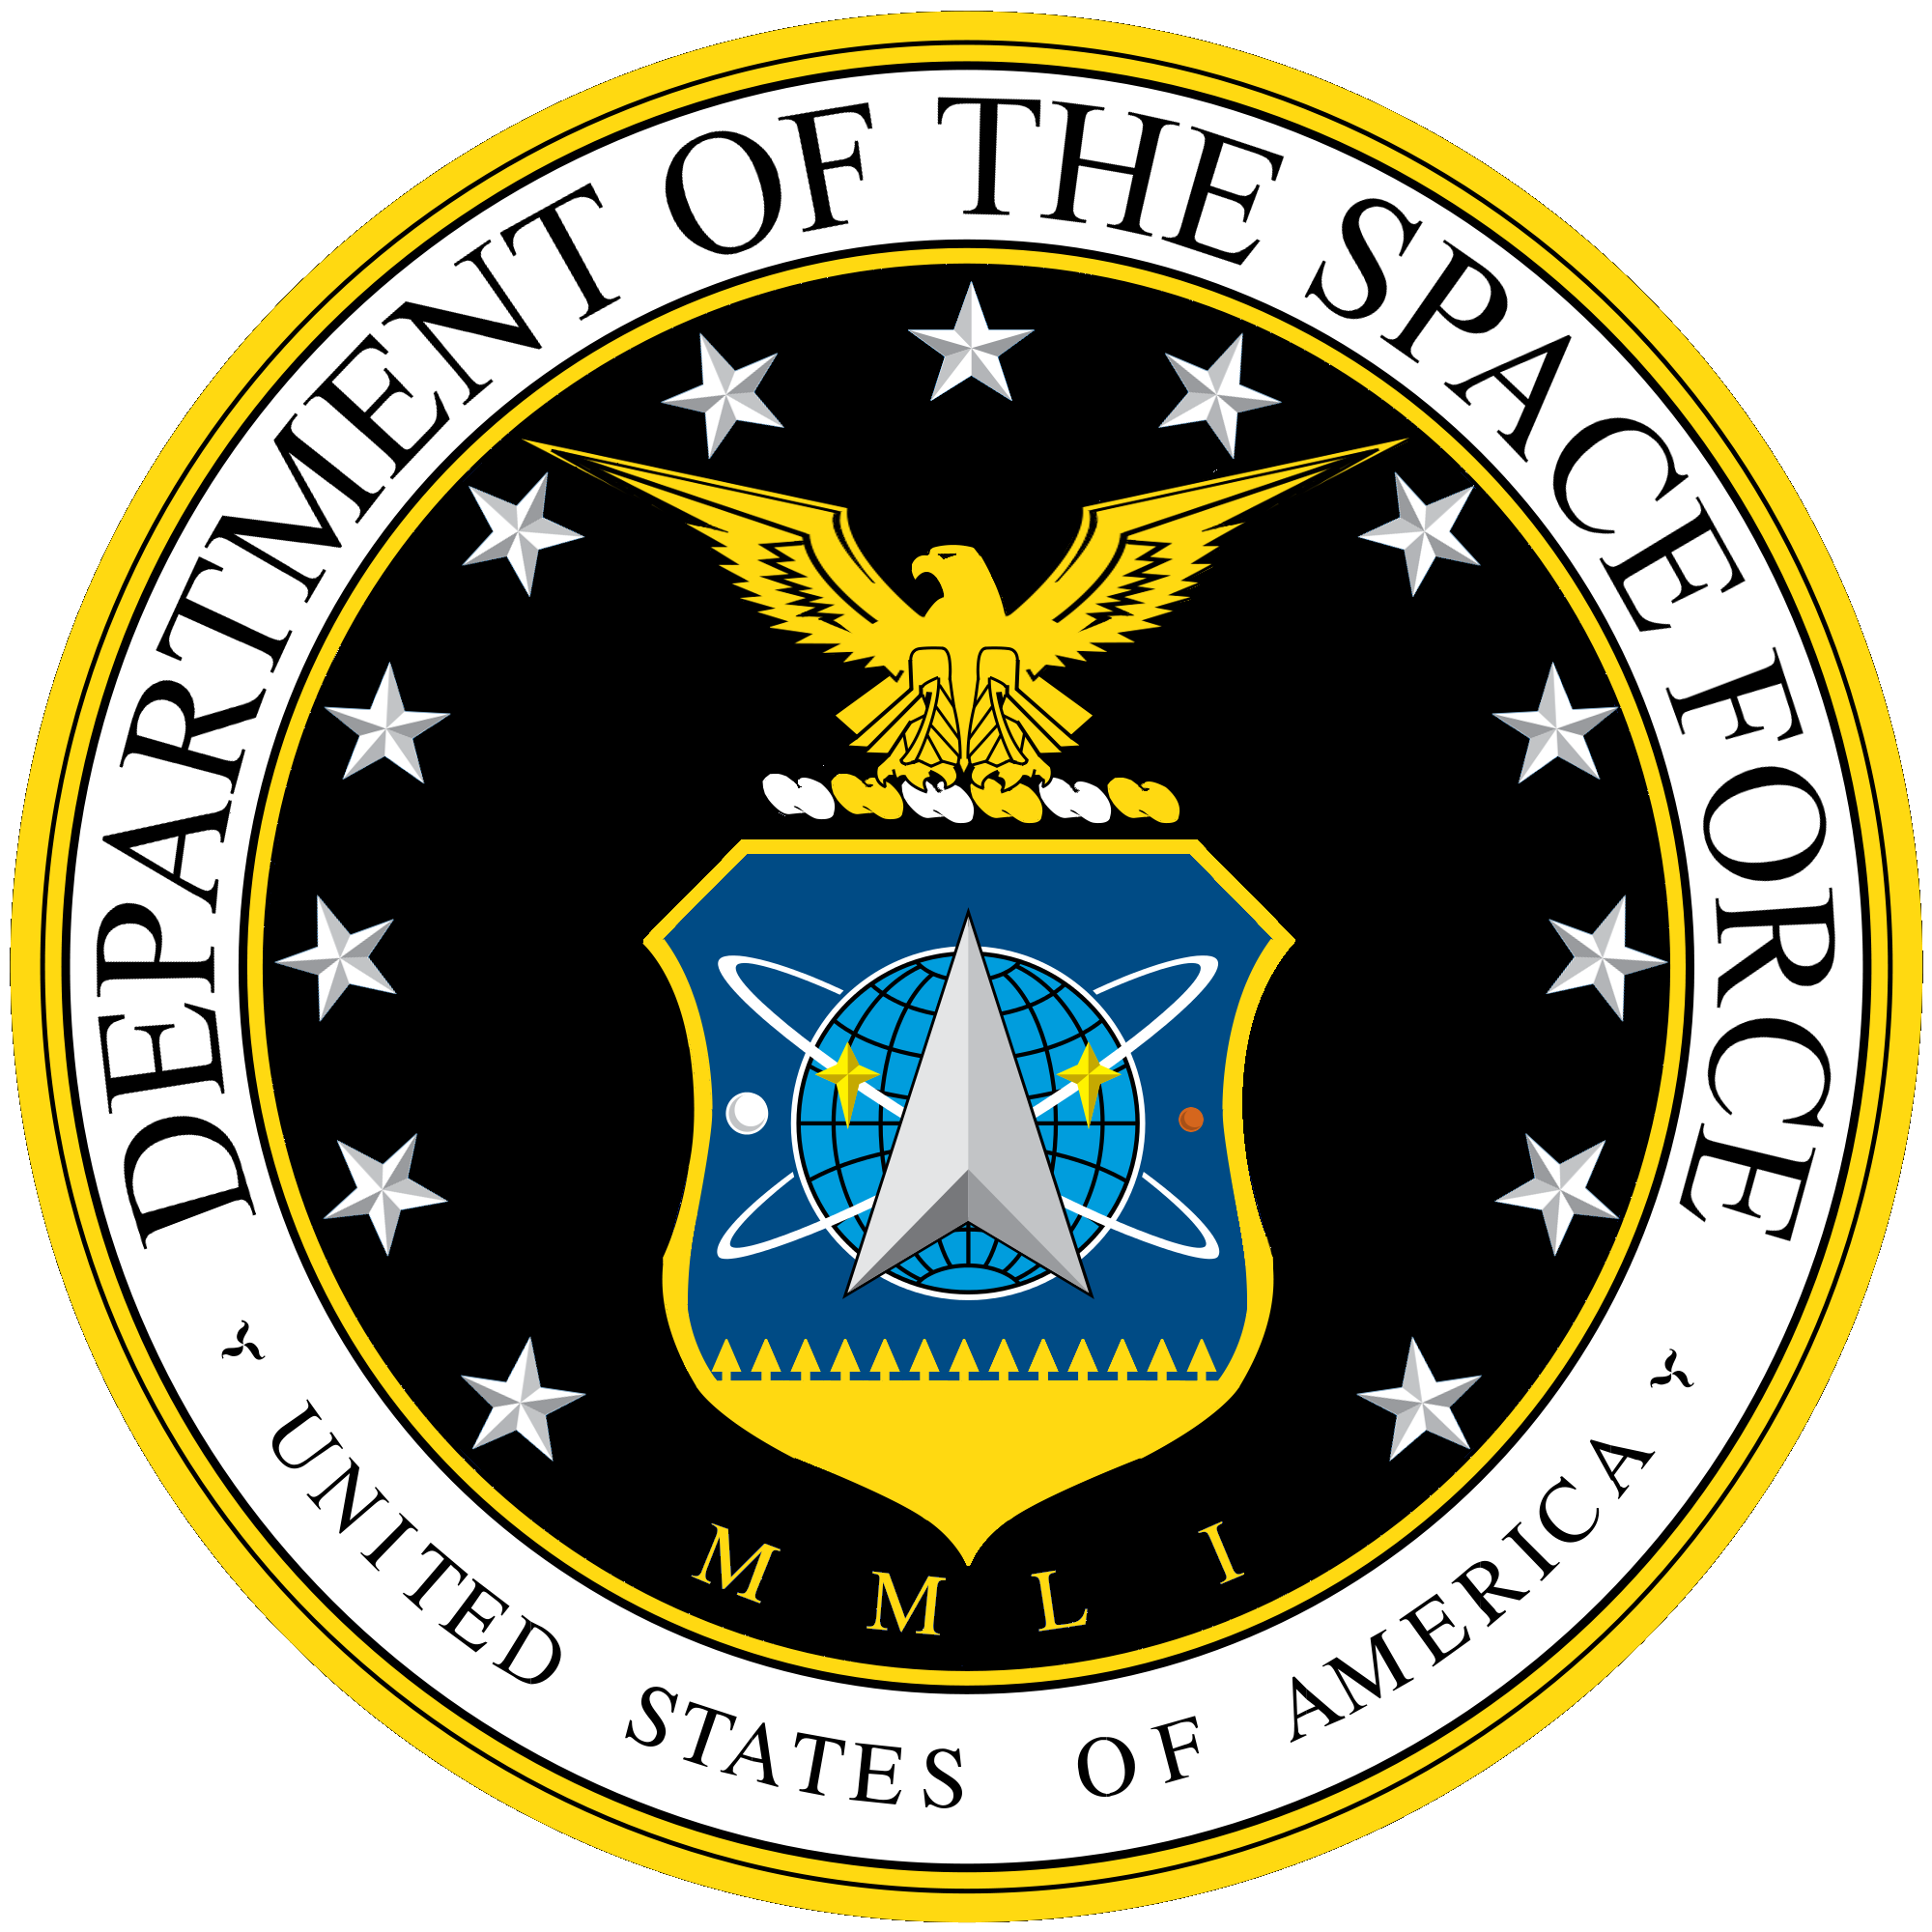 M crest png. Image space force future